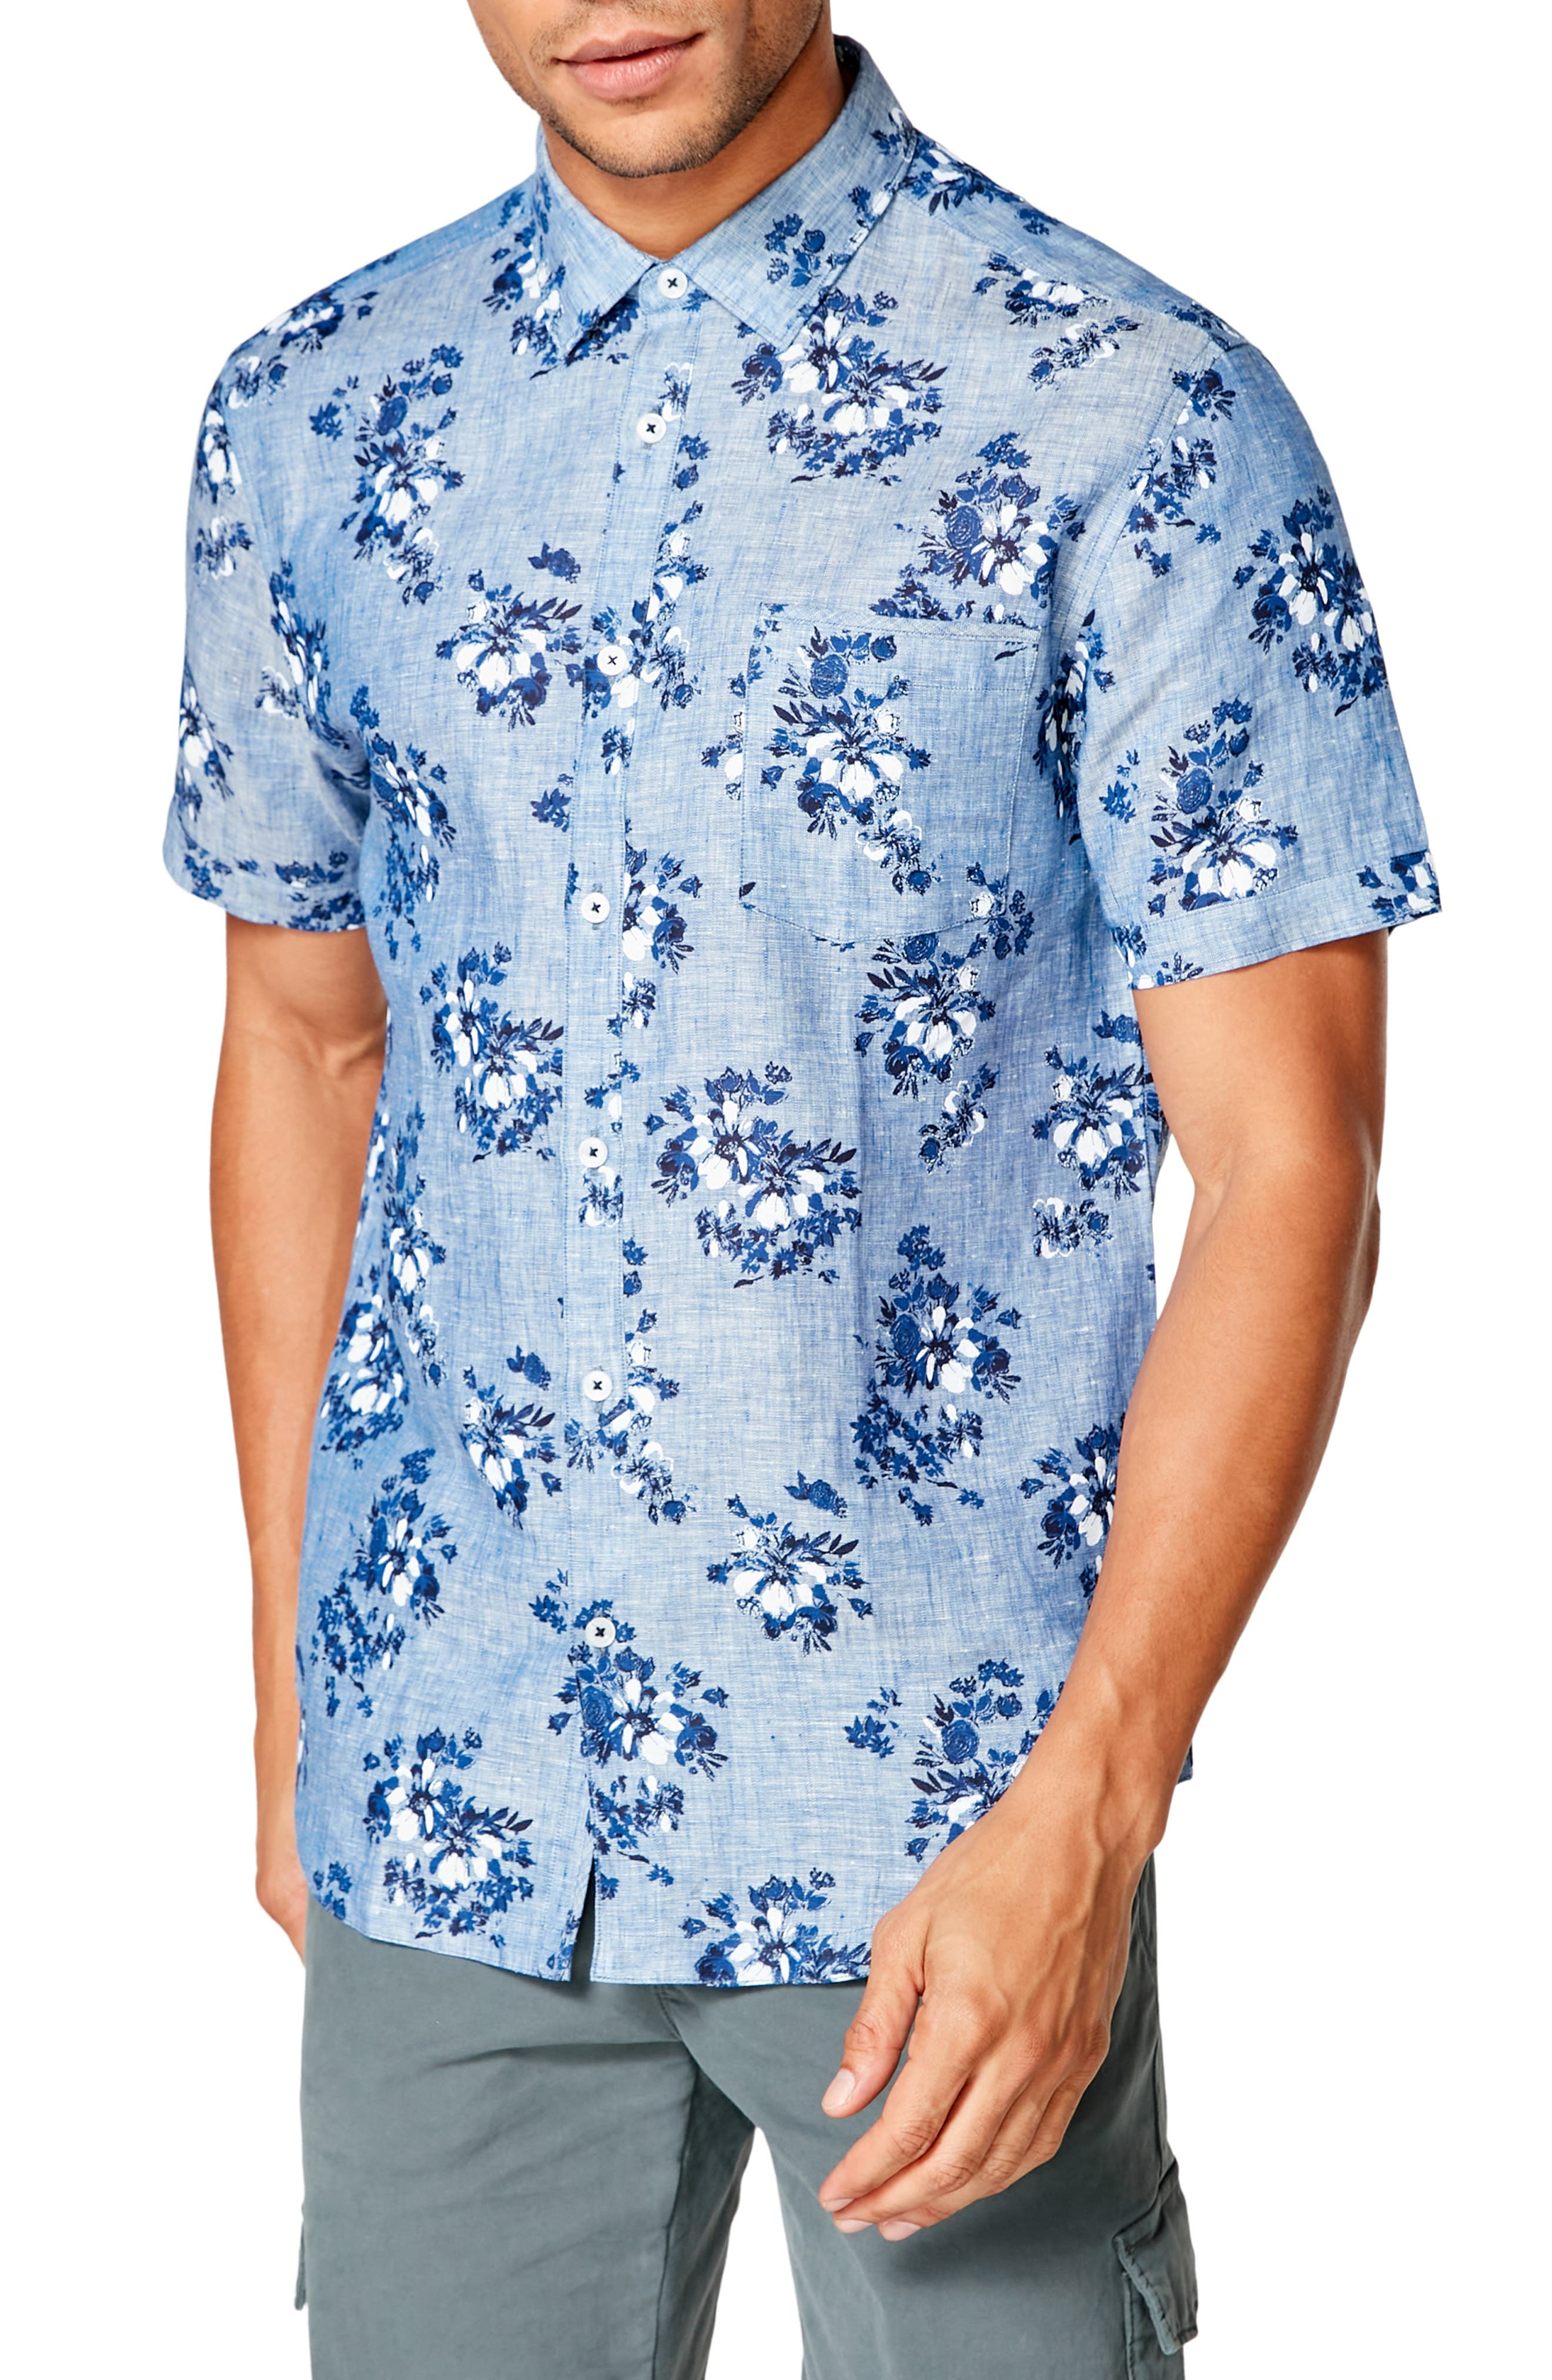 A handsome floral print scatters in a spectrum of blues all over a sport shirt tailored to catch the breezes from soft, lightweight linen. Style Name: Good Man Brand On Point Slim Fit Floral Short Sleeve Linen Button-Up Shirt. Style Number: 5912560. Available in stores.